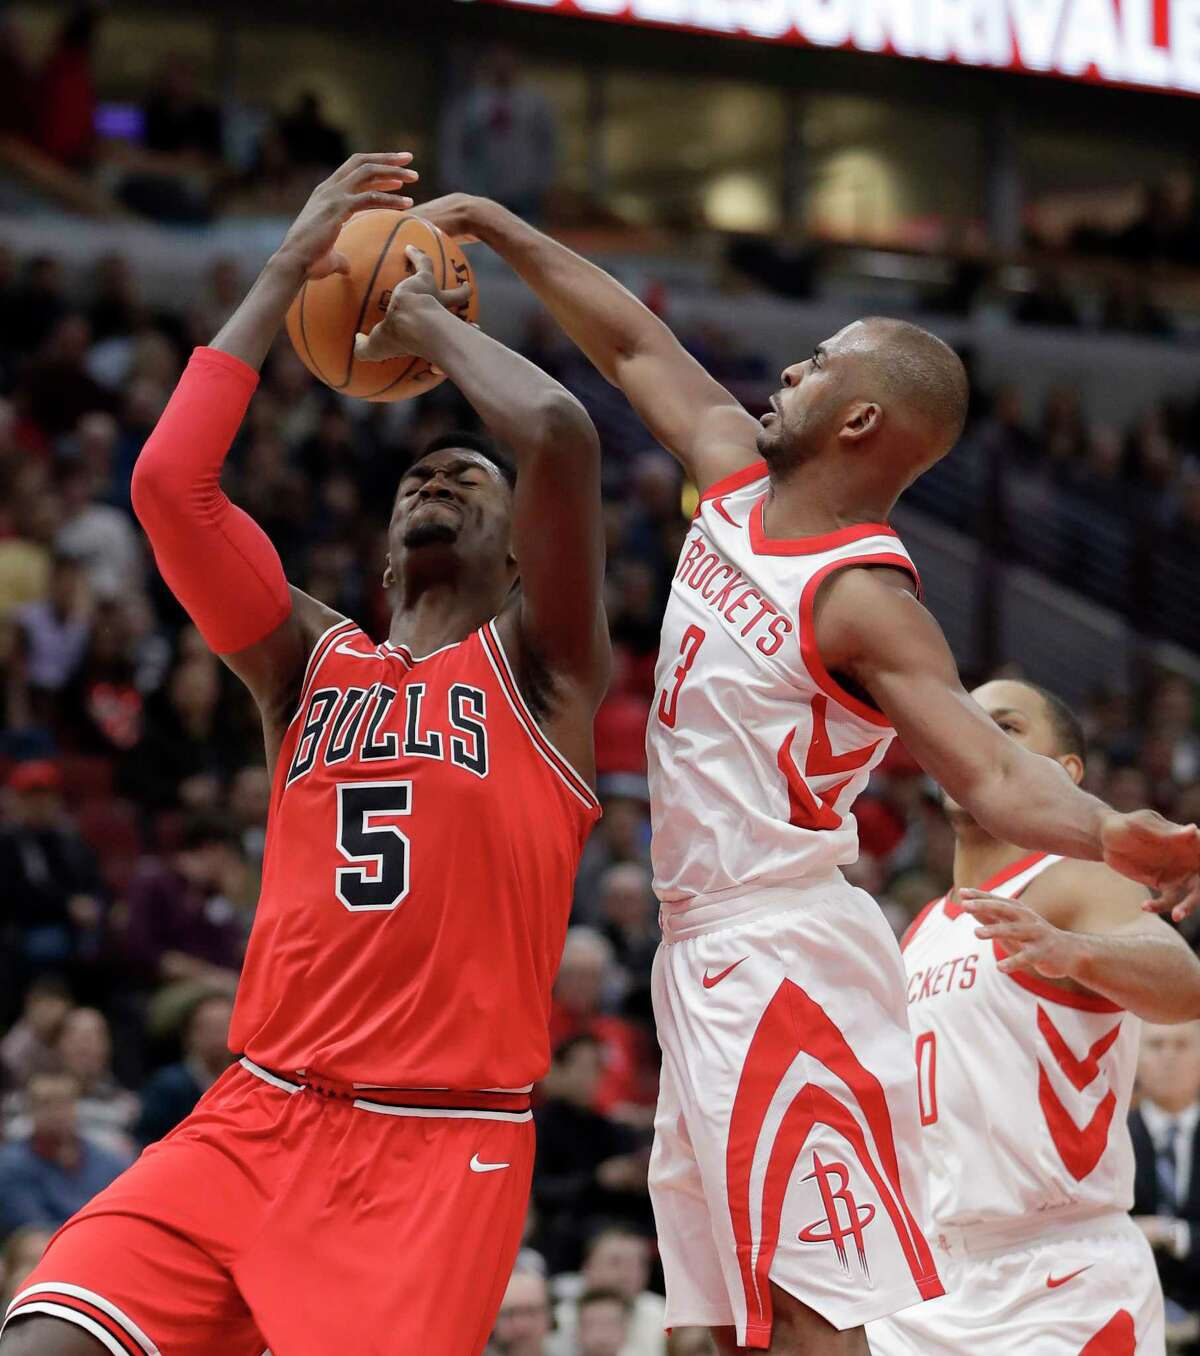 Houston Rockets' Chris Paul, front right, blocks the shot of Chicago Bulls' Bobby Portis, left, during the second half of an NBA basketball game Monday, Jan. 8, 2018, in Chicago. (AP Photo/Charles Rex Arbogast)